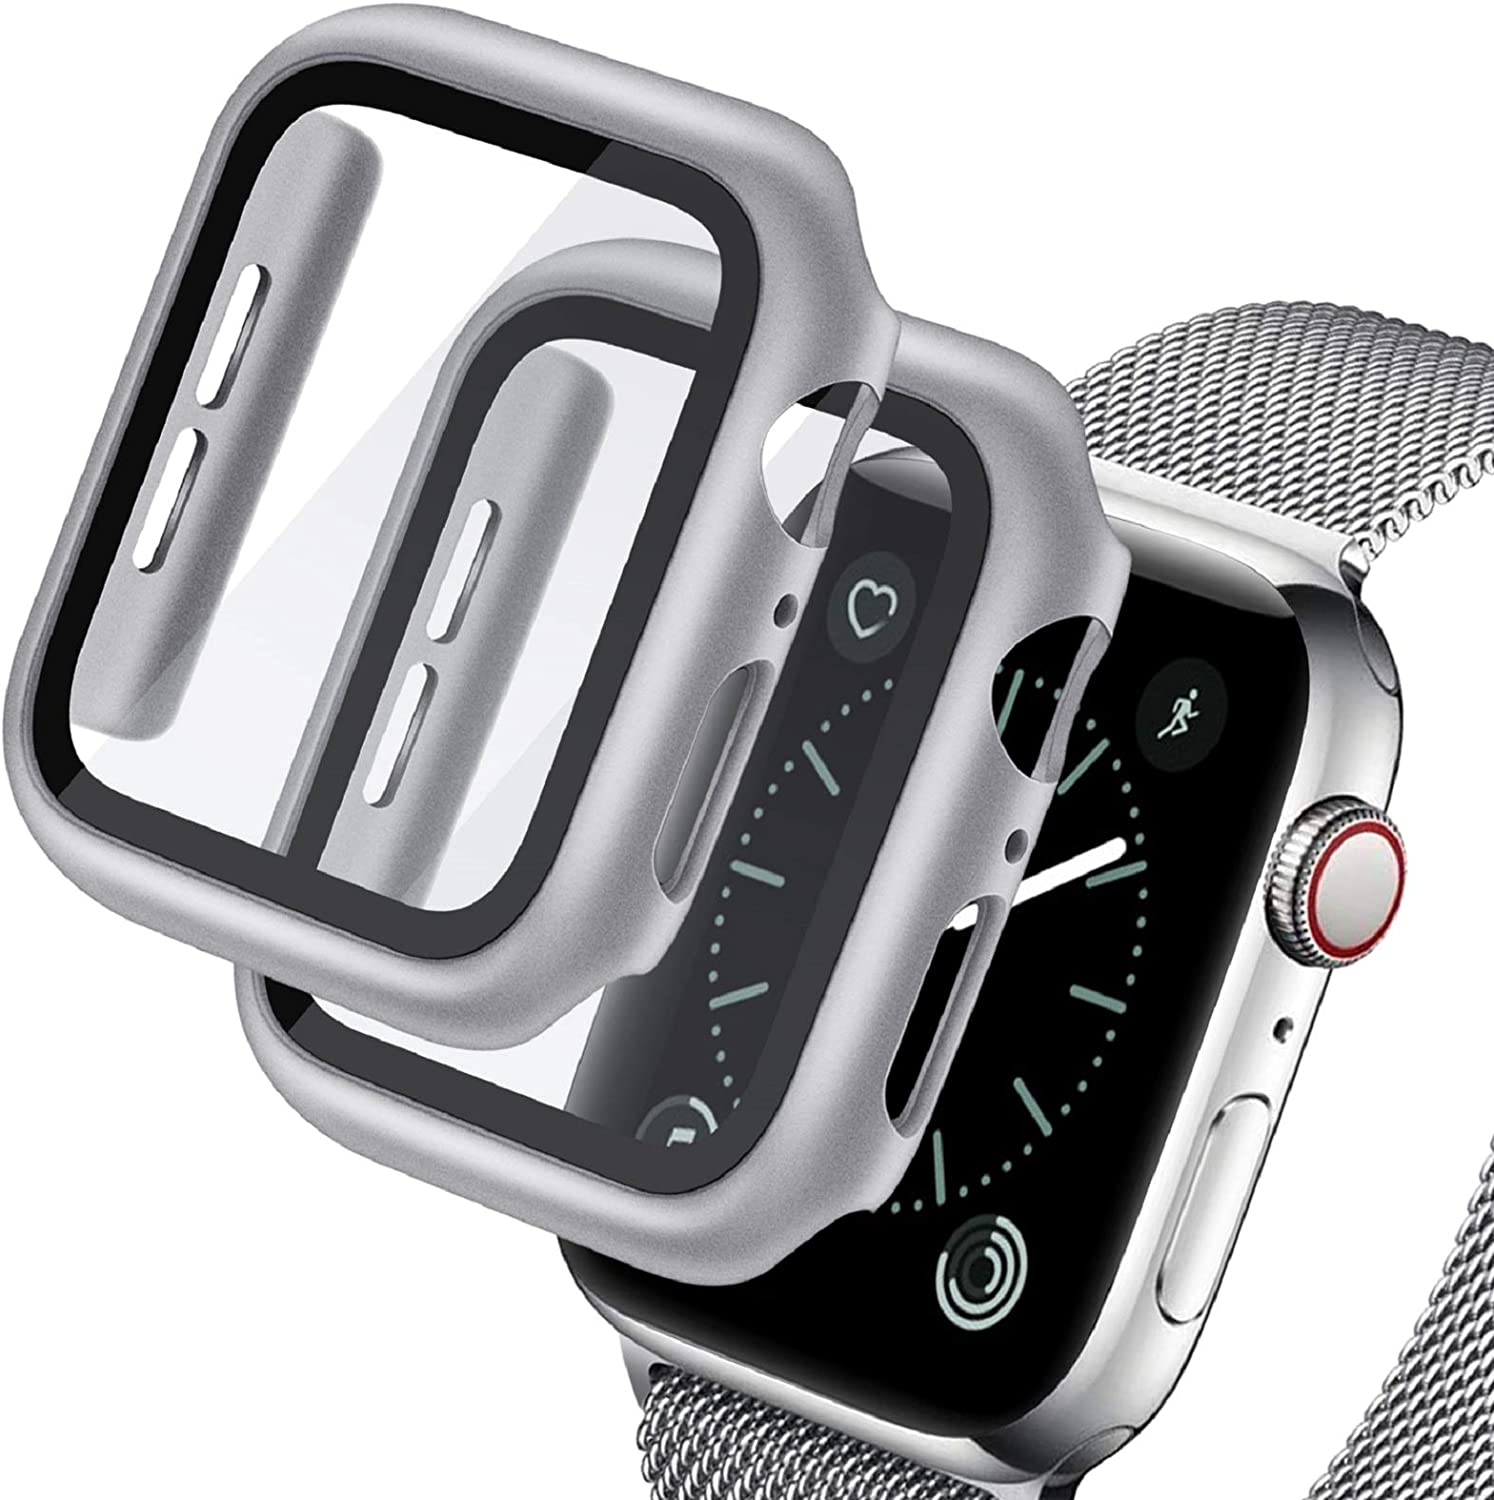 Deilin 2 Pack Hard PC Case with Tempered Glass Screen Protector Compatible Apple Watch Series 6/5/4/SE 44mm, Case for All Around Coverage Protective Bumpers Cover for iWatch Series 6/5 /4 /SE 44mm